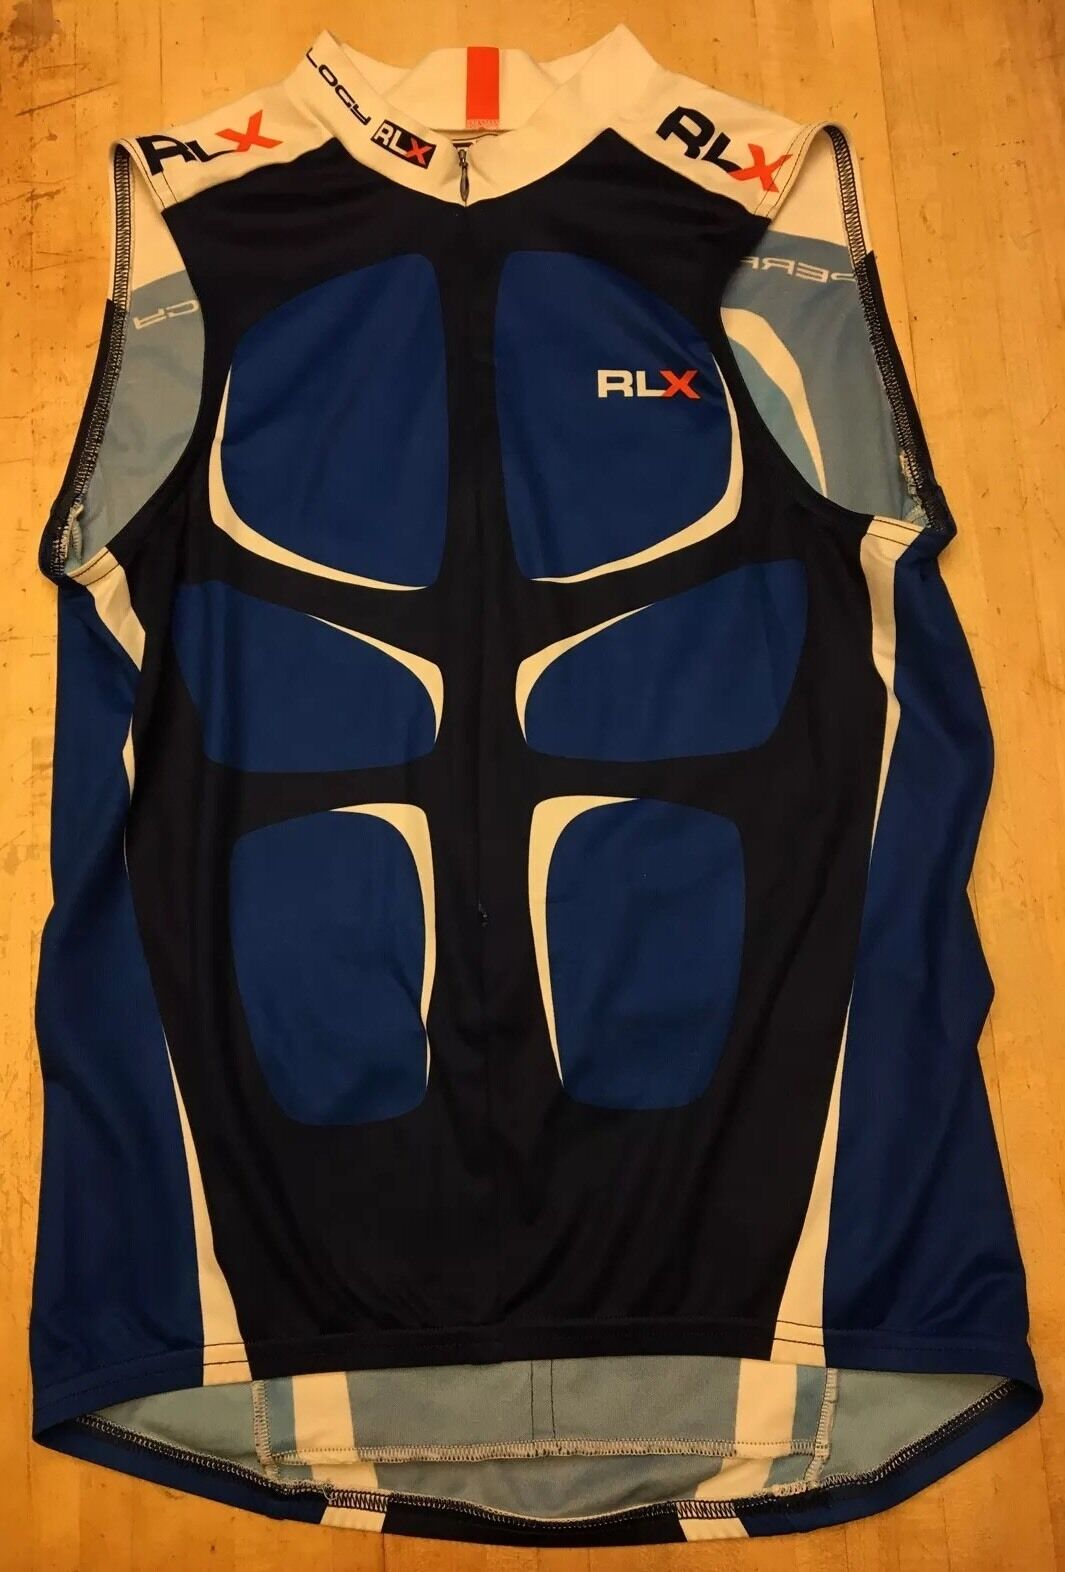 Mens Polo Sport RLX Sleeveless blu & bianca Cycling Jersey Medium